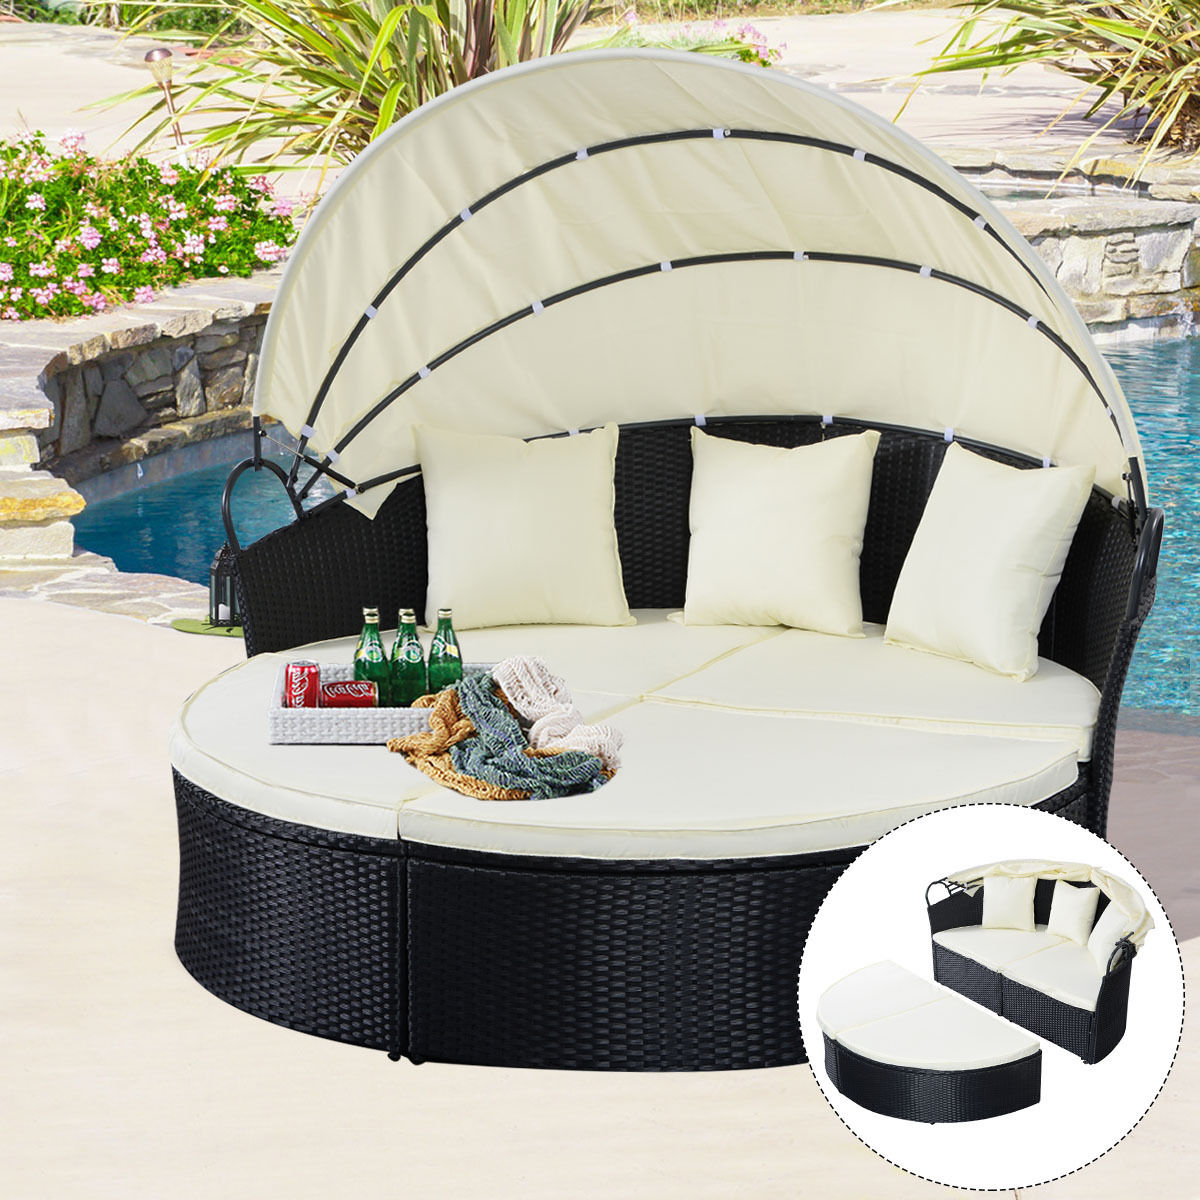 Costway Outdoor Patio Sofa Furniture Round Retractable Canopy Daybed Throughout Preferred Circle Sofa Chairs (View 7 of 20)